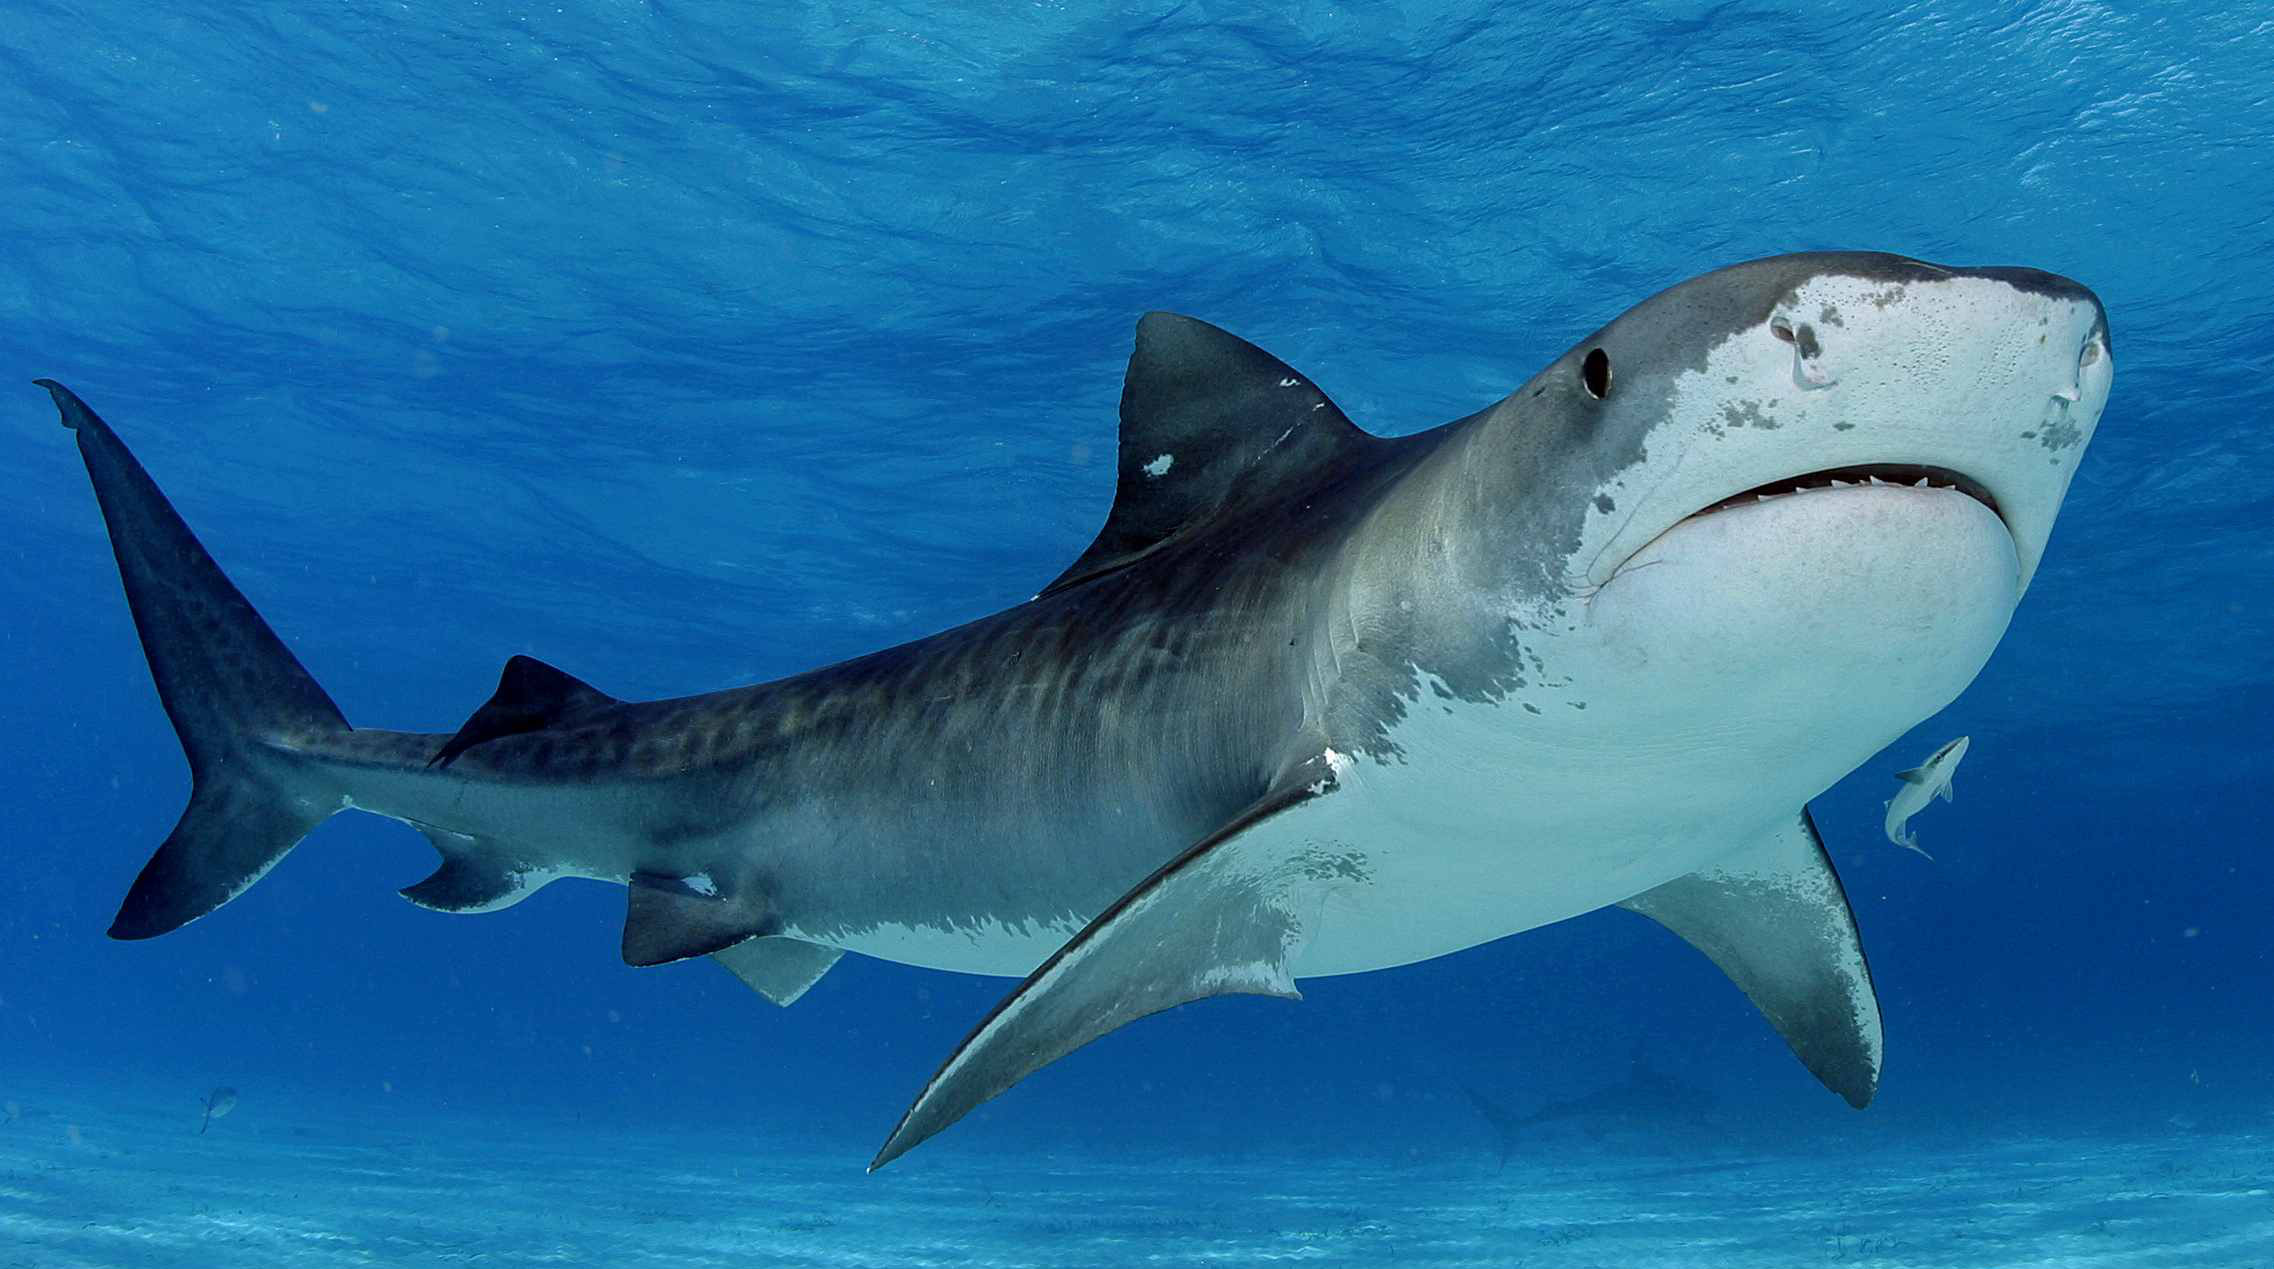 tiger-shark-picture-swimming-pictures_261284.jpg